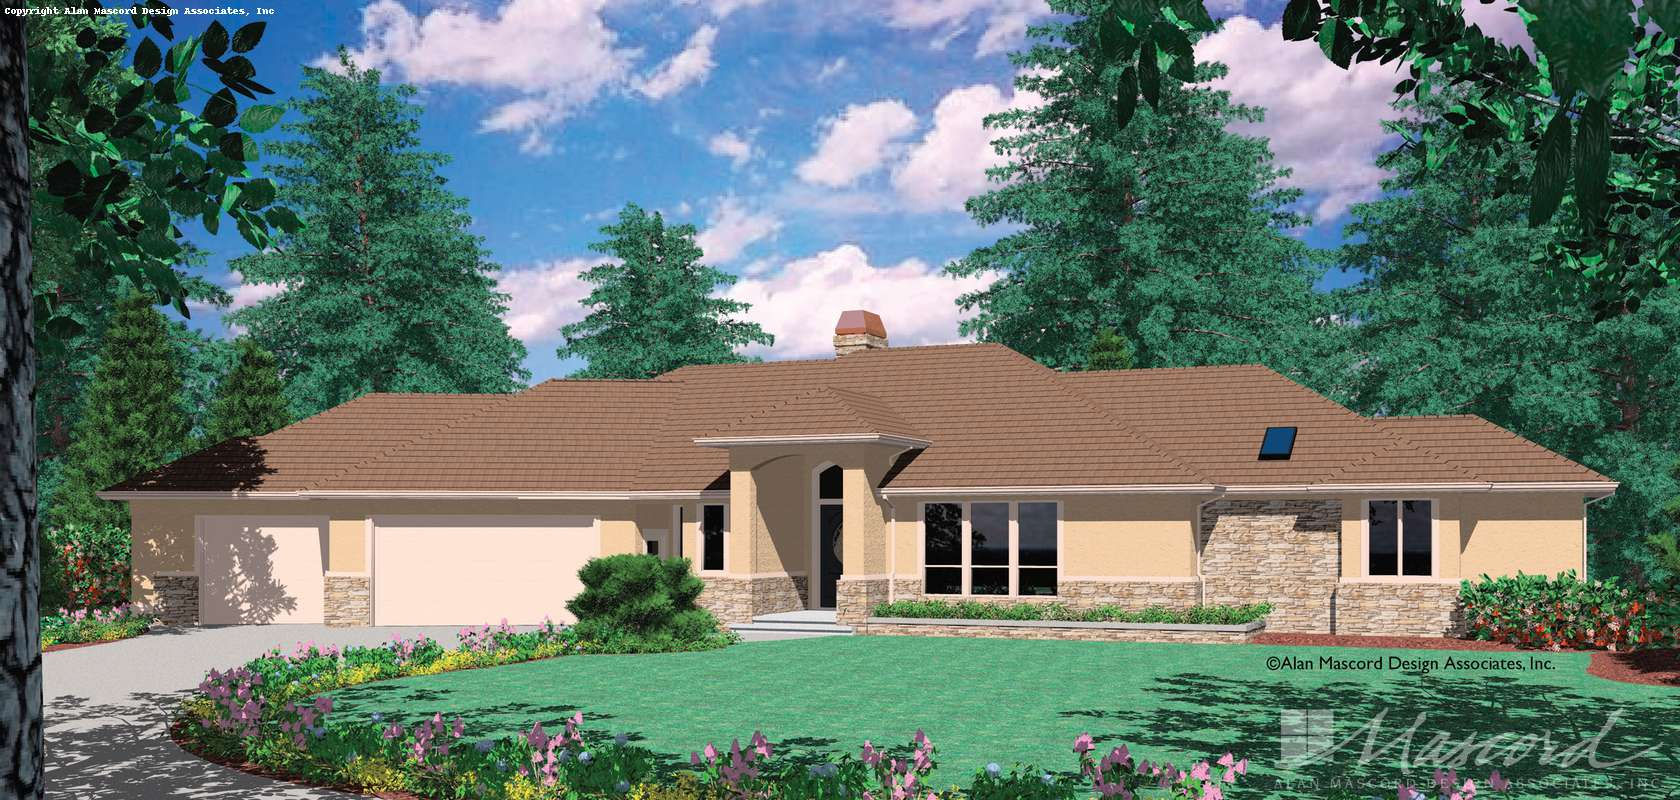 Mascord House Plan 1225: The Hayden